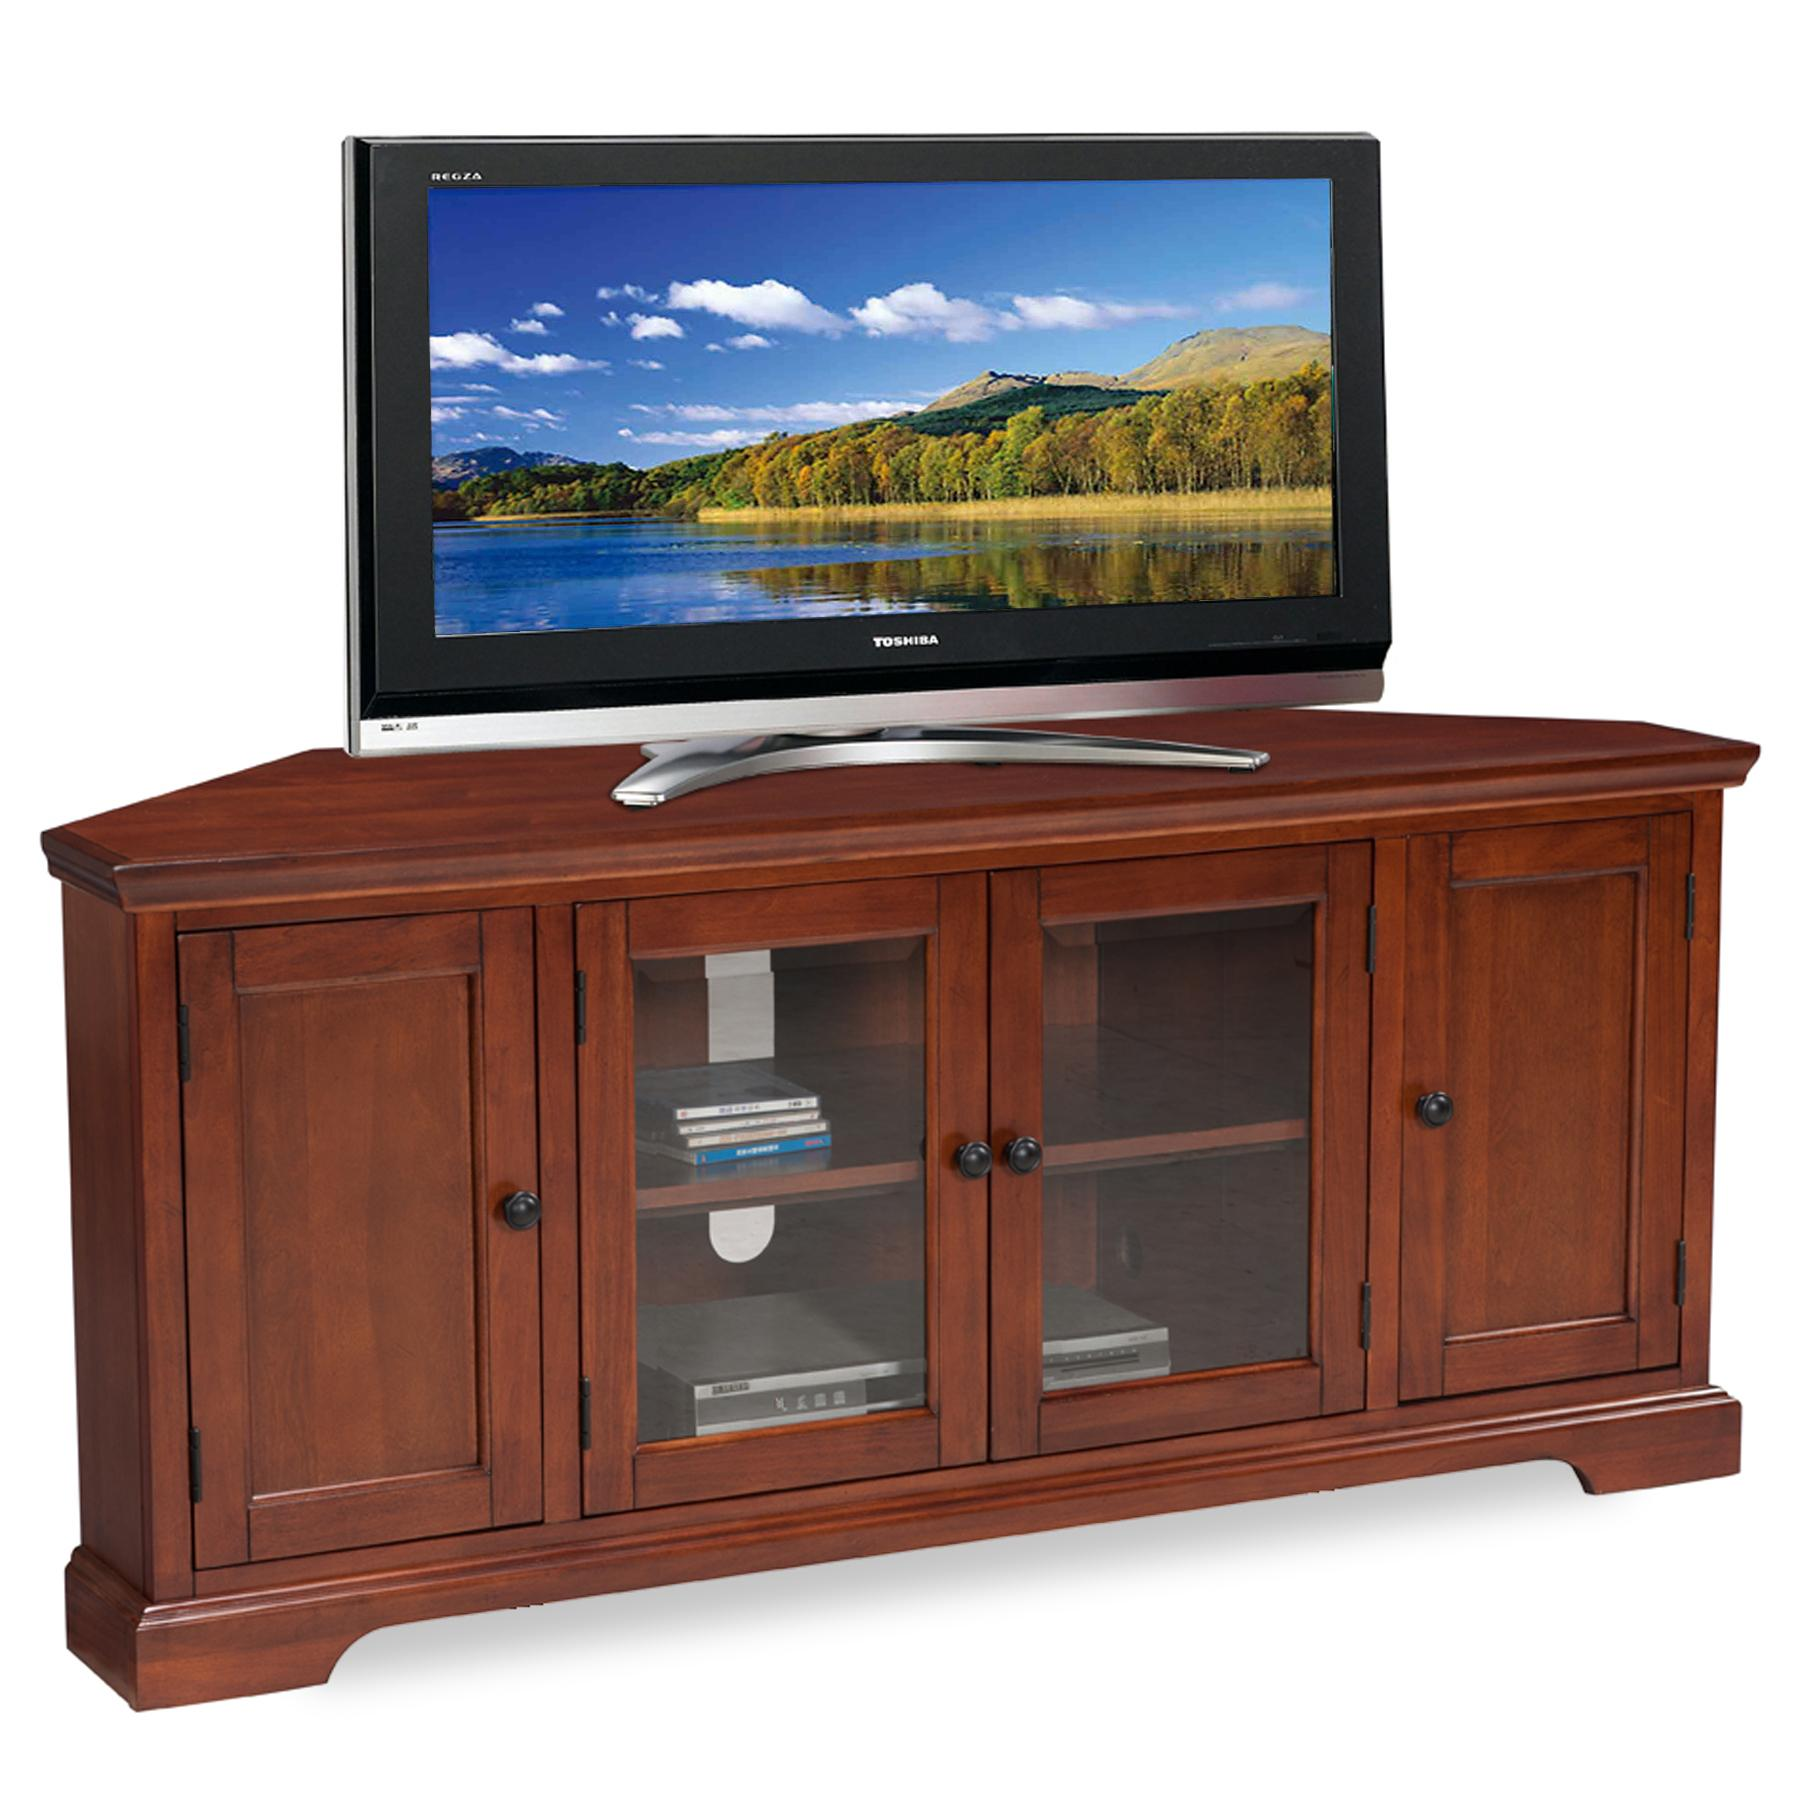 leick westwood corner tv stand 60 inch. Black Bedroom Furniture Sets. Home Design Ideas